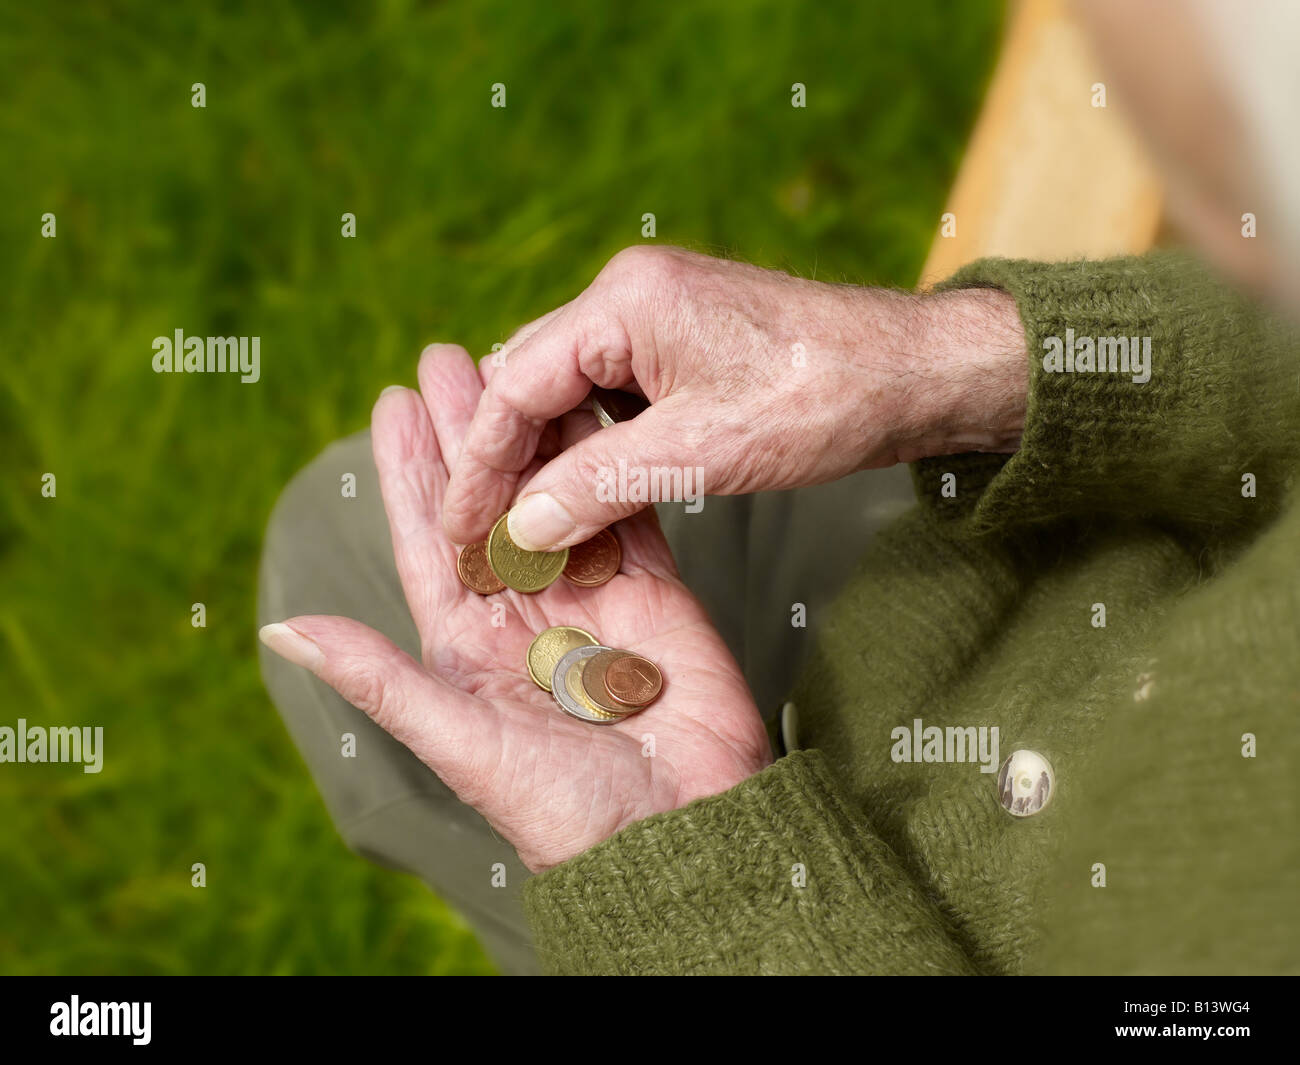 old hands of a senior counting less money, coins - Stock Image